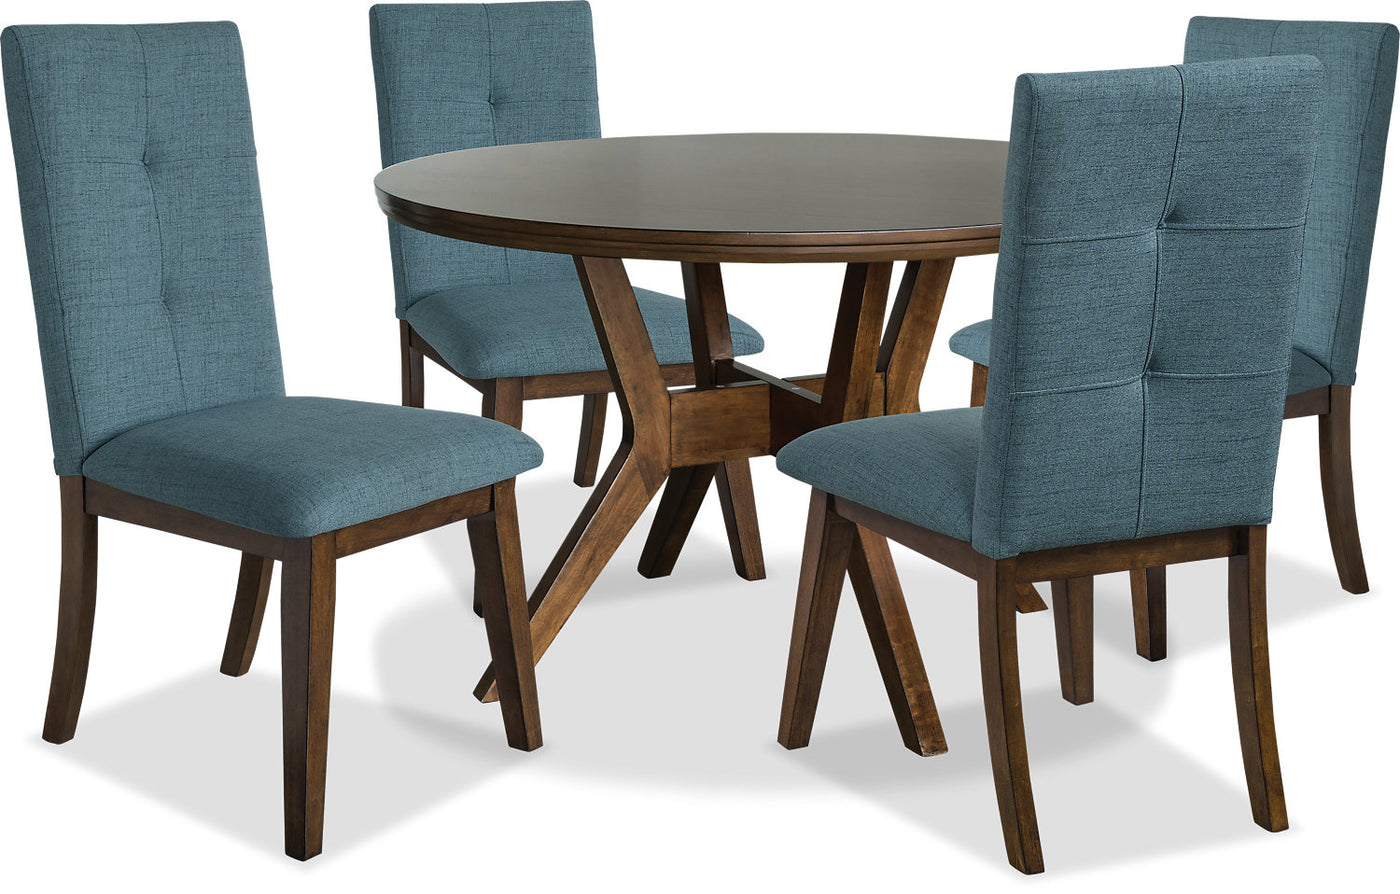 Picture of: Chelsea 5 Piece Round Dining Table Package With Aqua Chairs The Brick